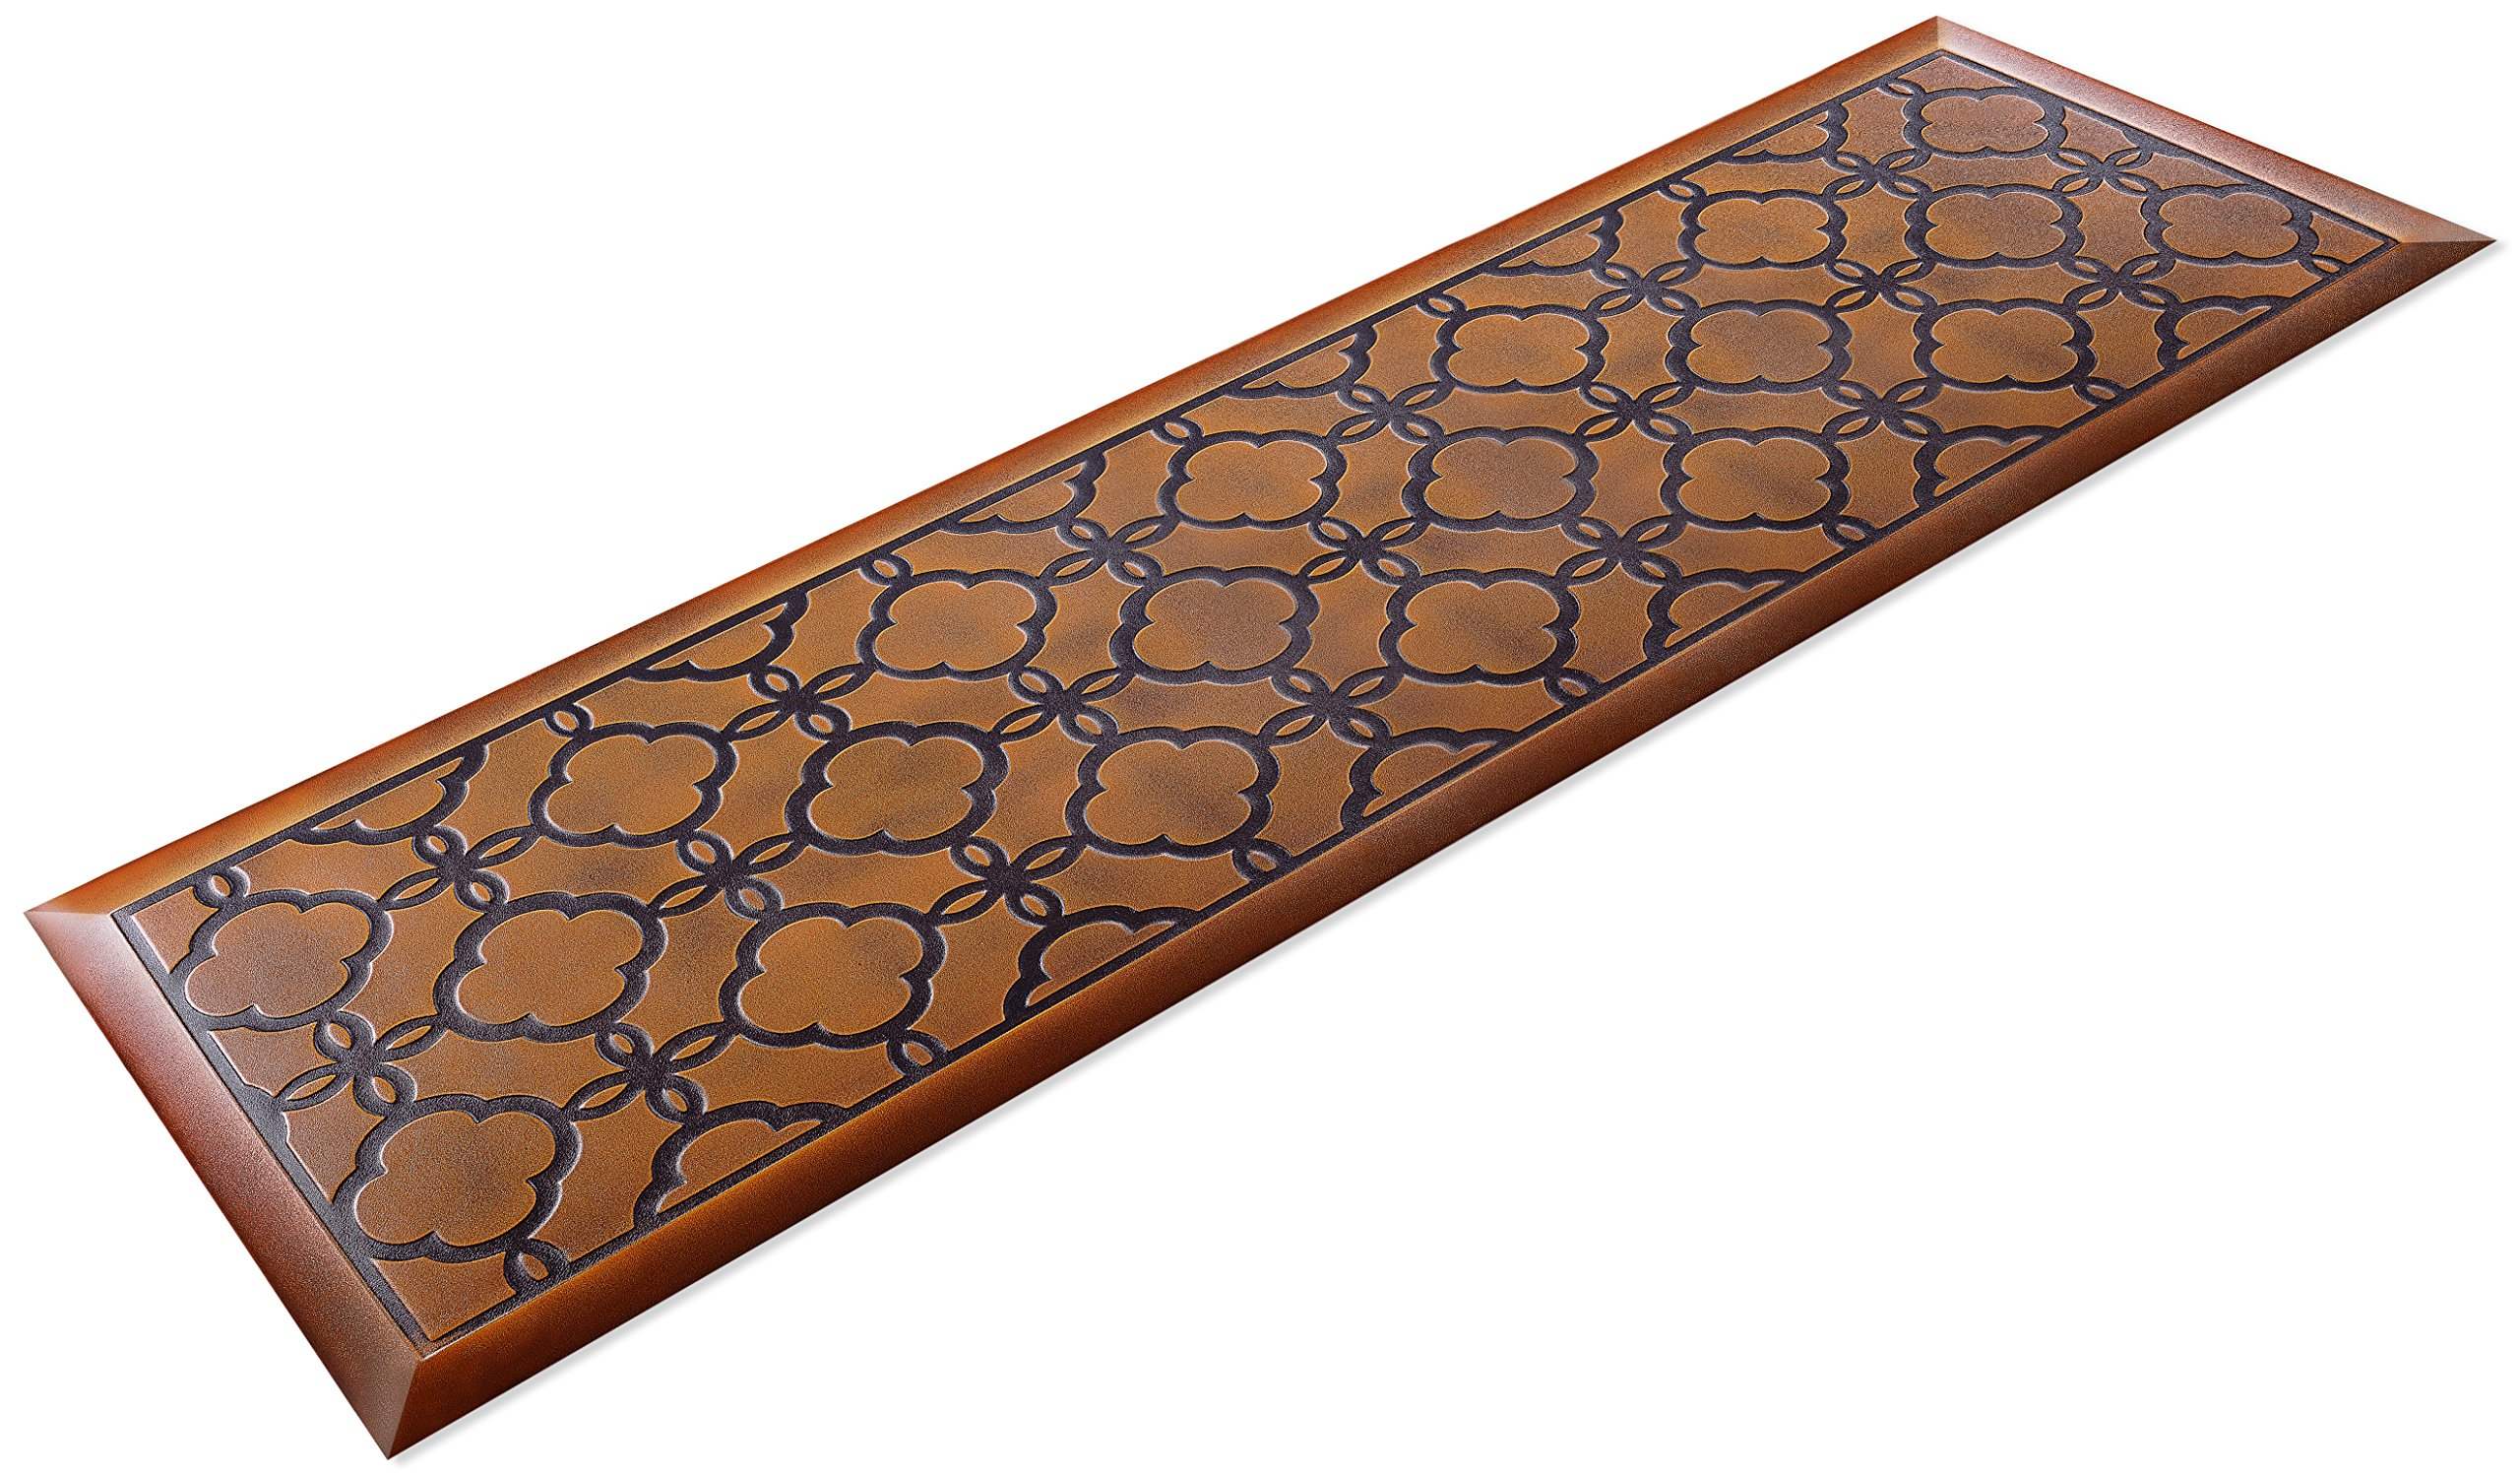 Urvigor Anti Fatigue Comfort Mats Kitchen Floor Mats